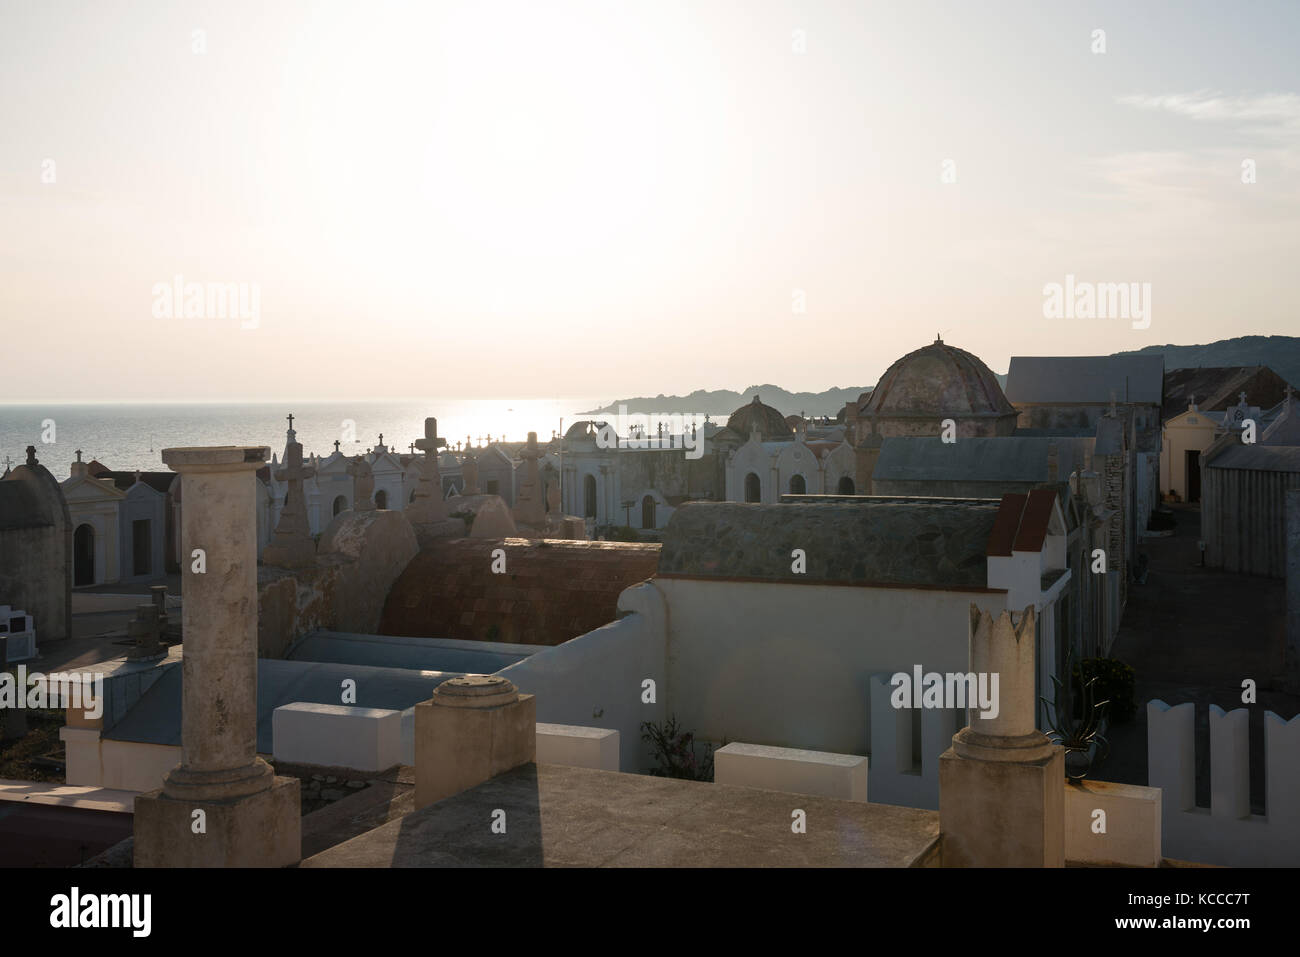 Sun sets behind tombs of marine cemetery in Bonifacio, Corsica Island, France - Stock Image